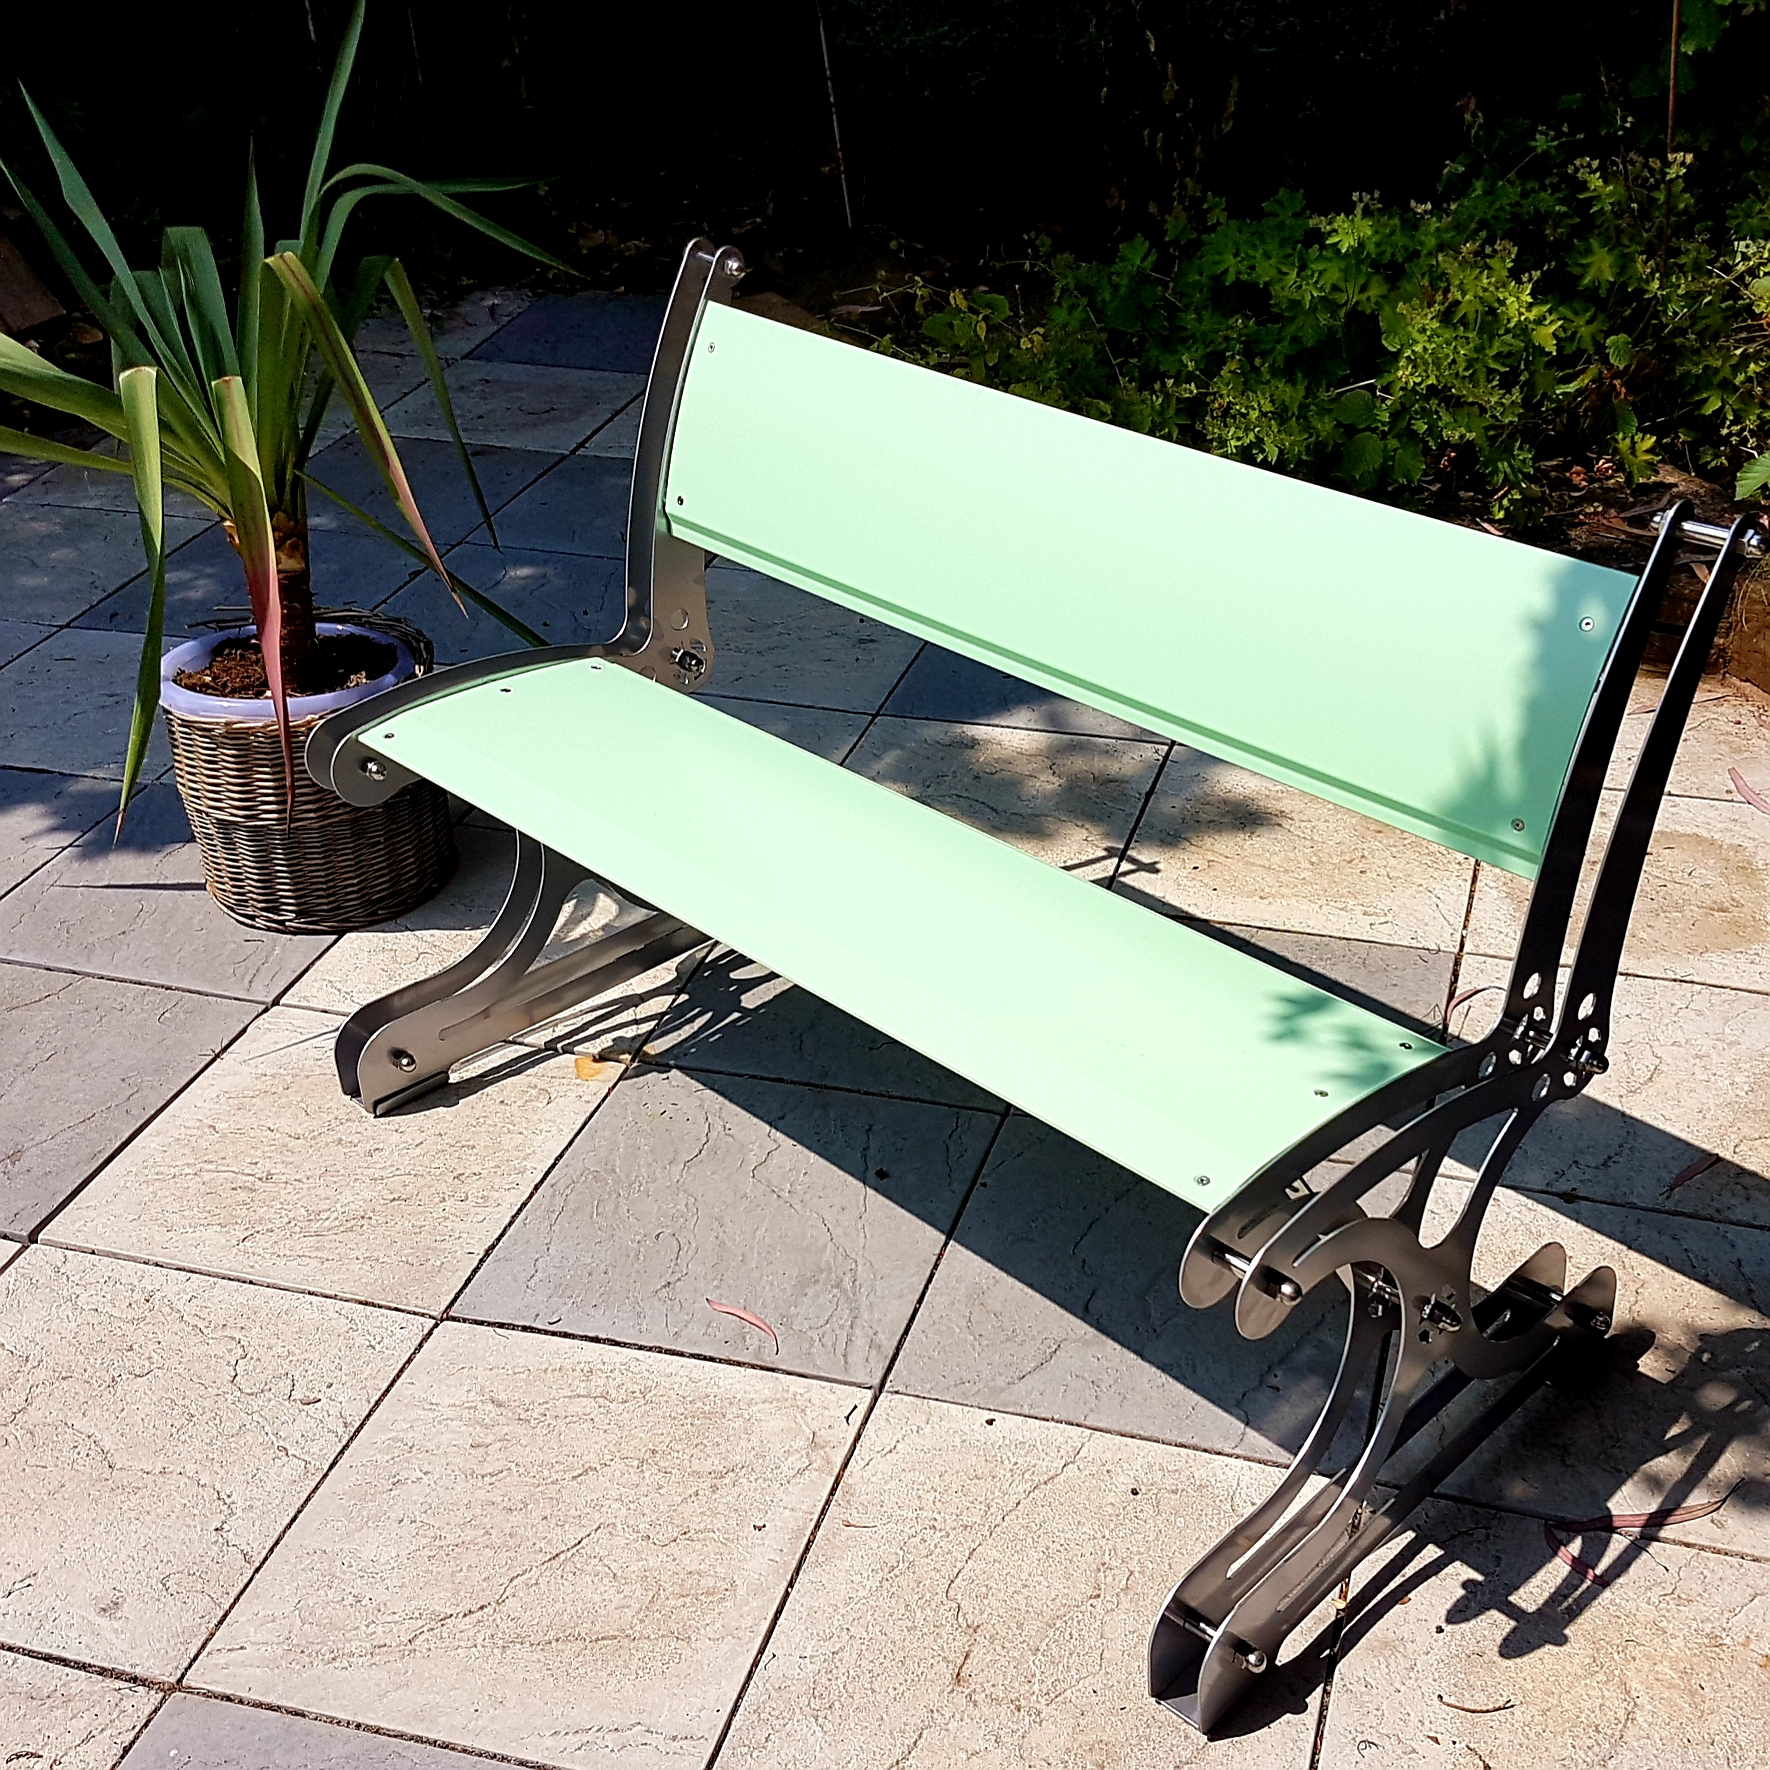 Aero Bench. New 'Crossrail Elizabeth line' pastel colours for you. Exclusive garden furniture.